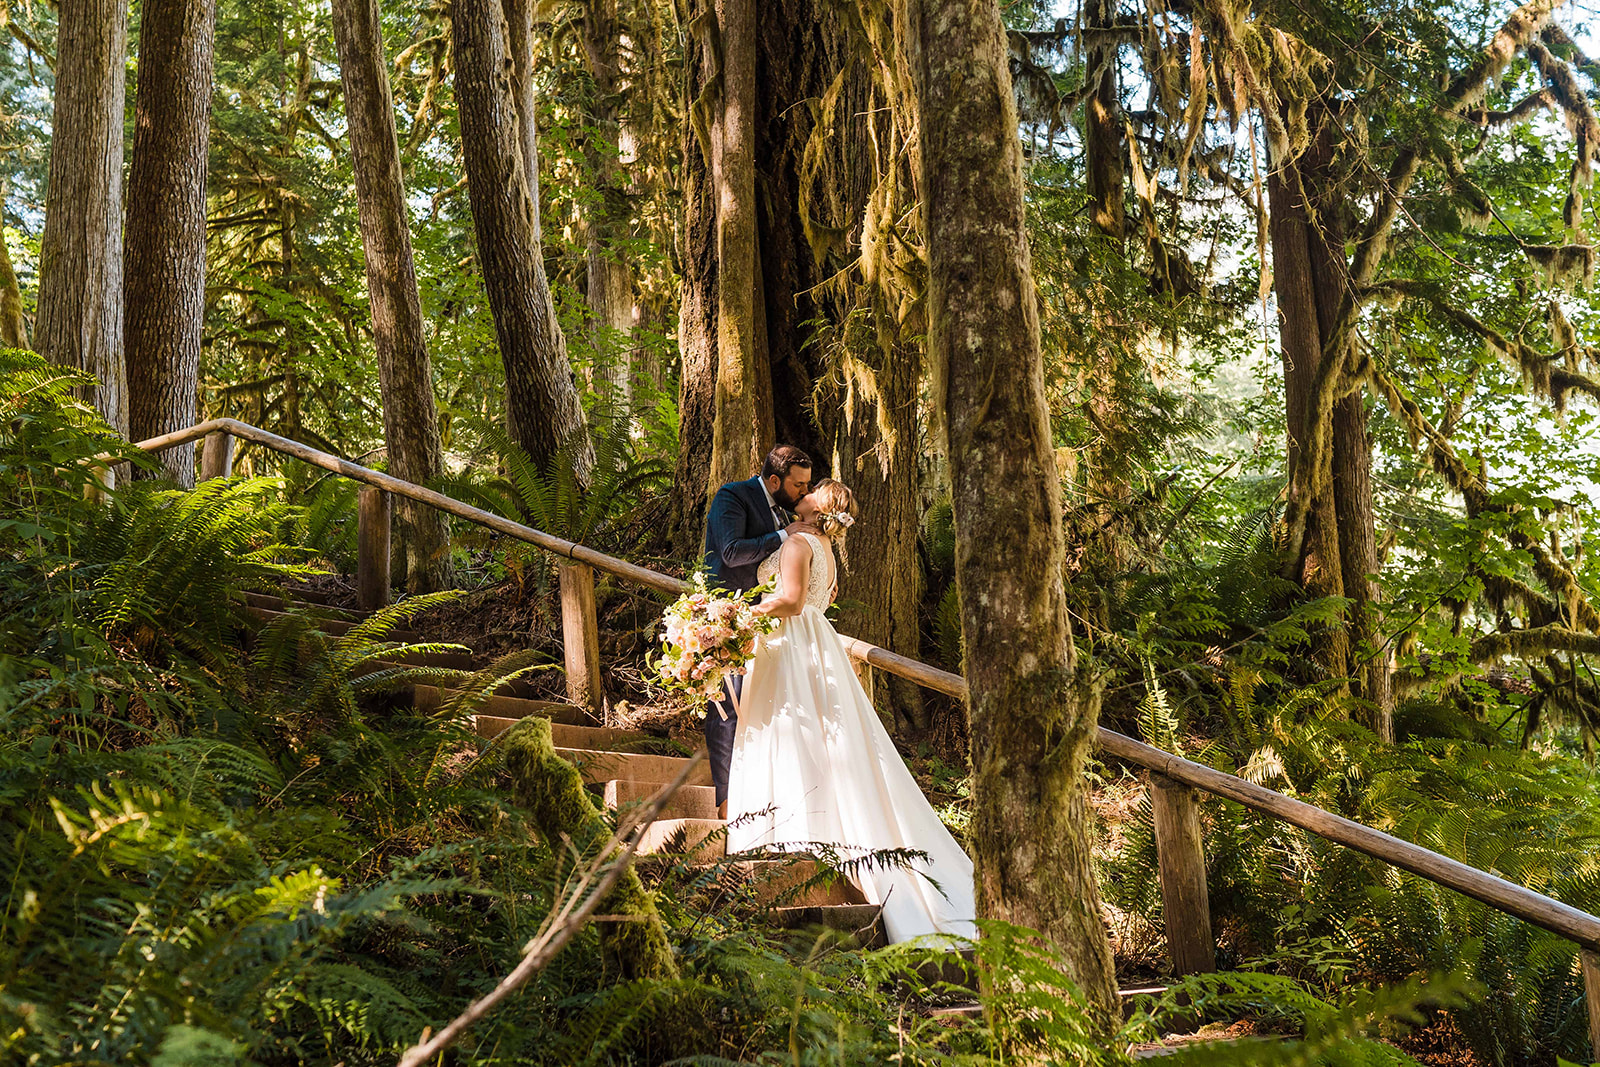 seattle mountain elopement seattle elopement bouquet seattle elopement flowers seattle elopement seattle elope in seattle how to elope in seattle how to elope in the mountains wedding flowers for elopement wedding florist wedding flowers wedding floral design wedding floral designer